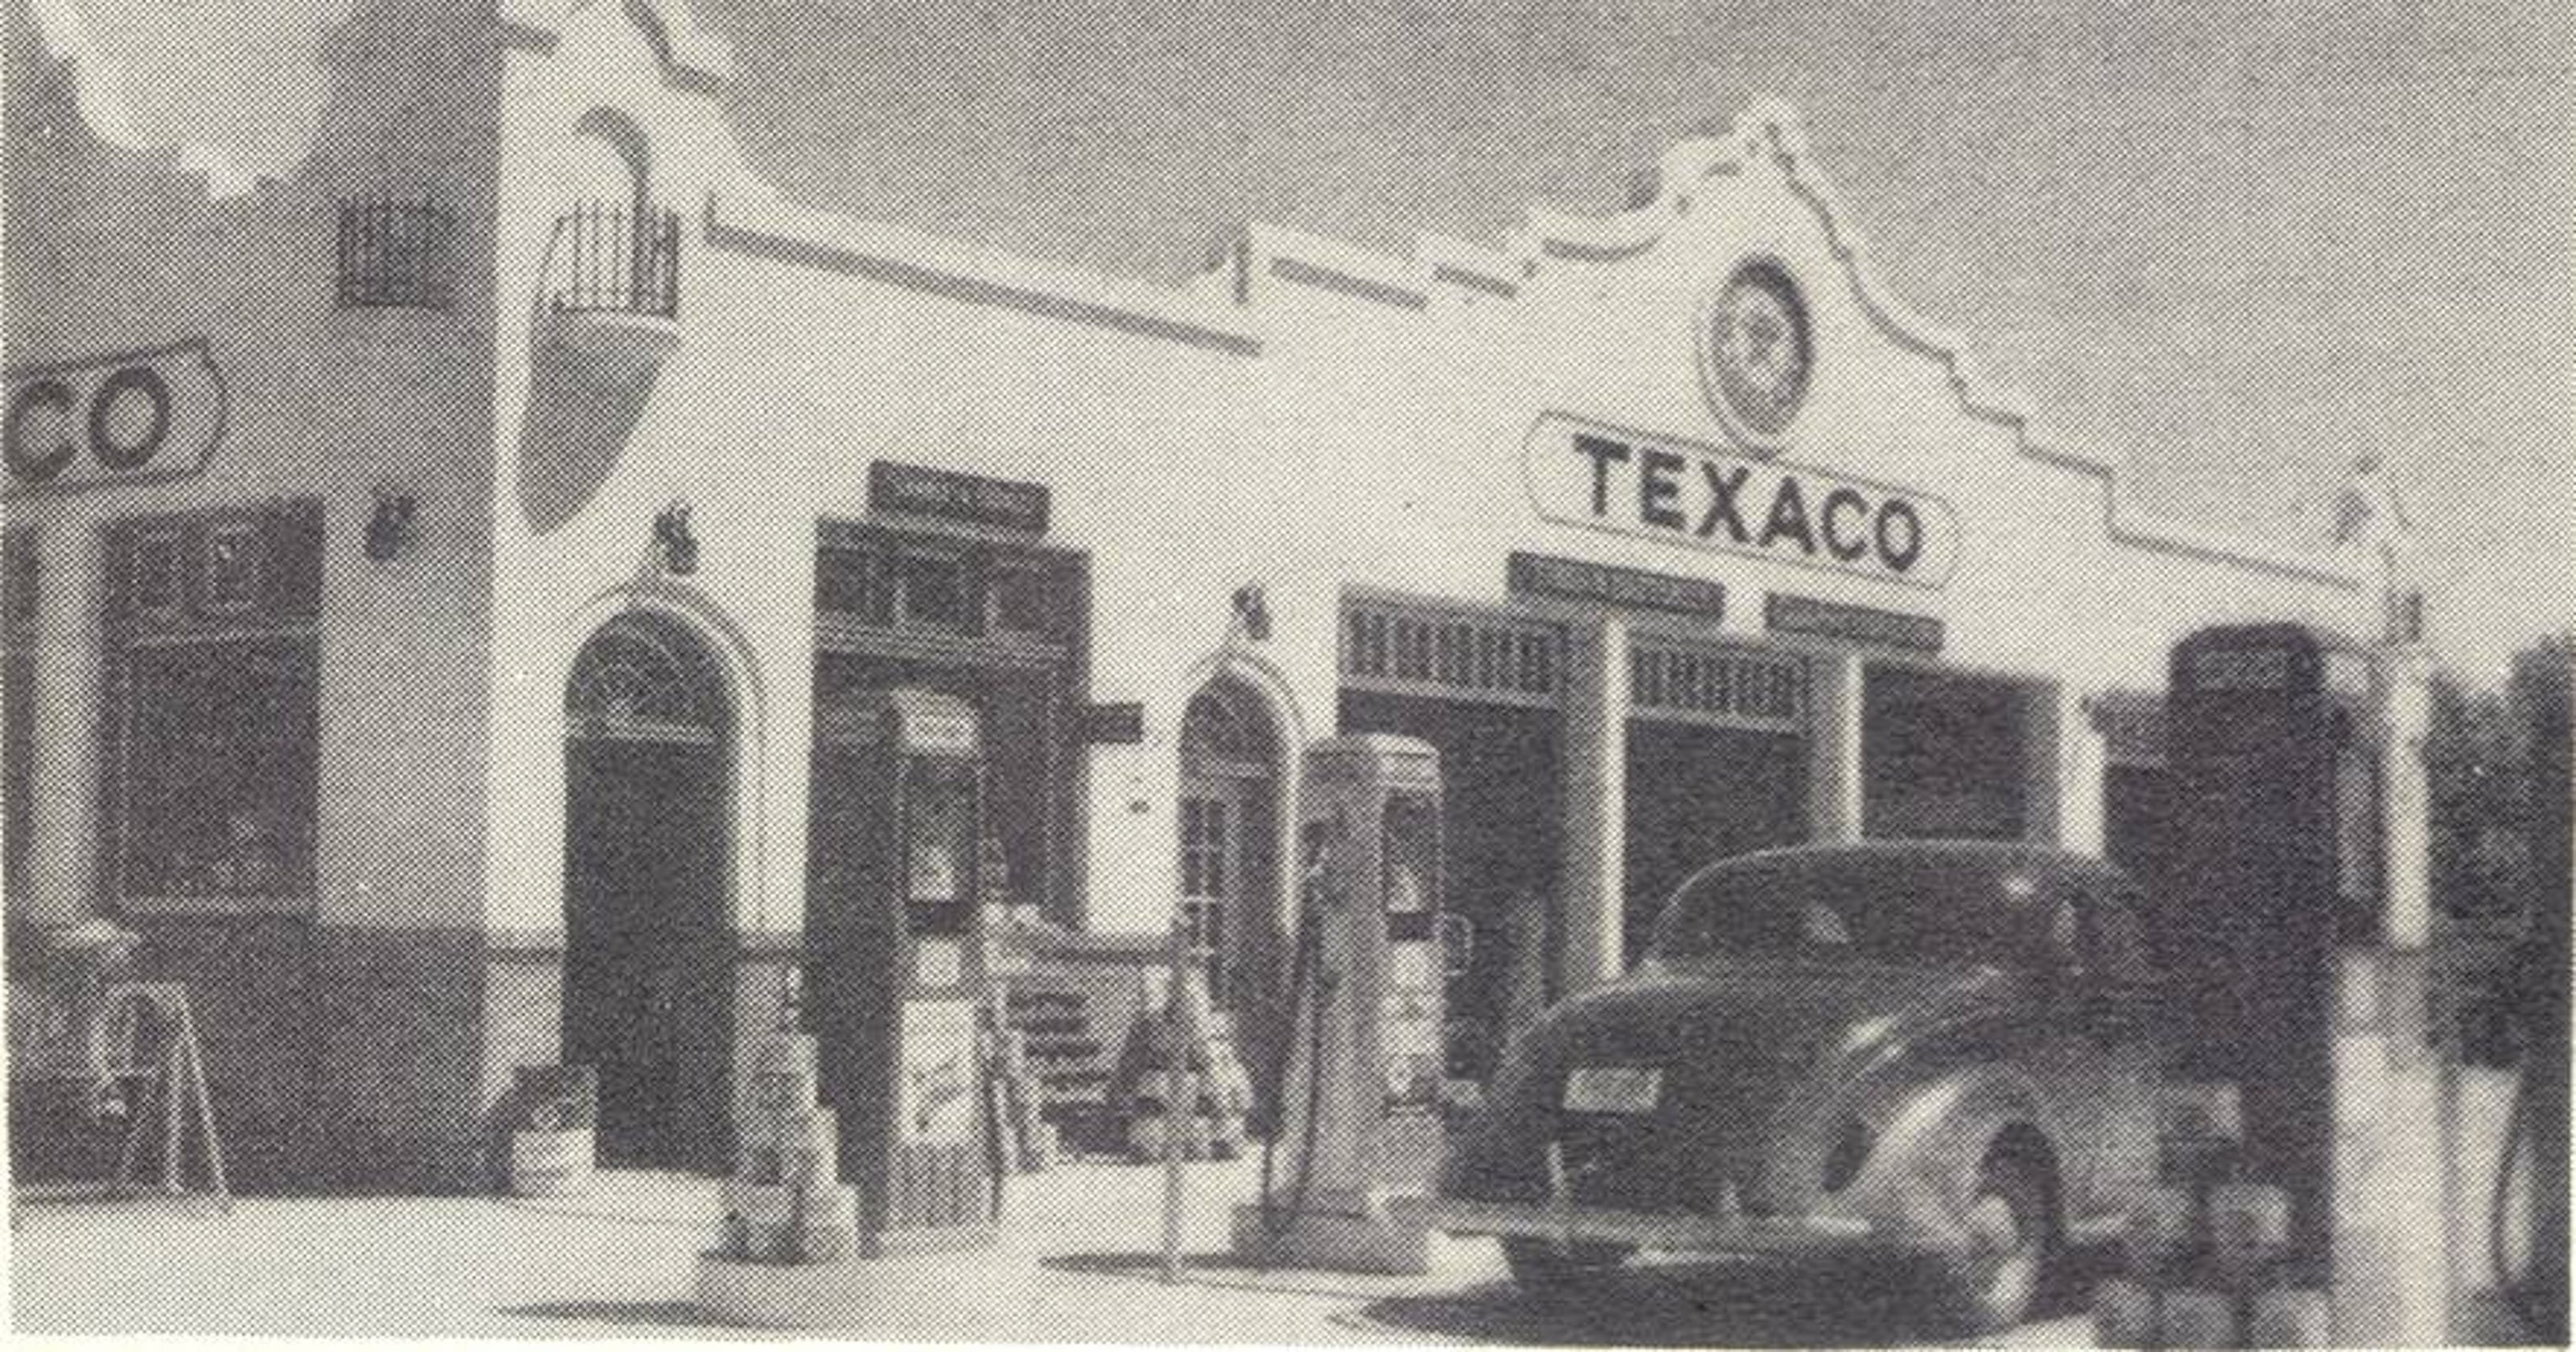 Griff Anderson: Good to see 'ol girl' Texaco station shine again as